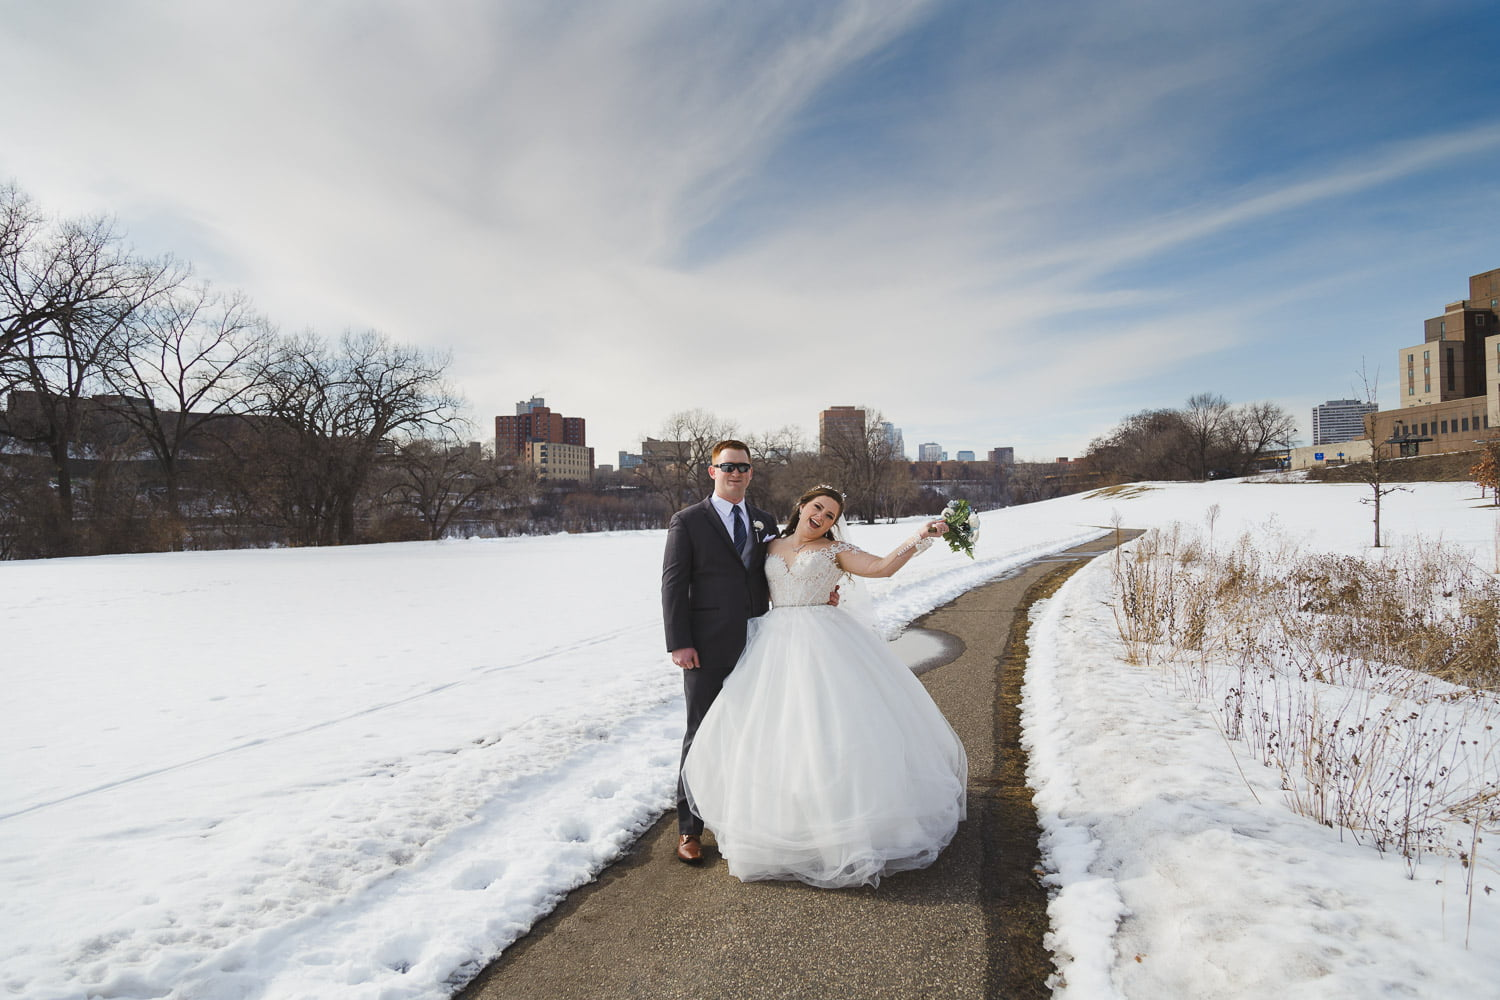 a snowy winter wedding in February with blue sky in Minneapolis